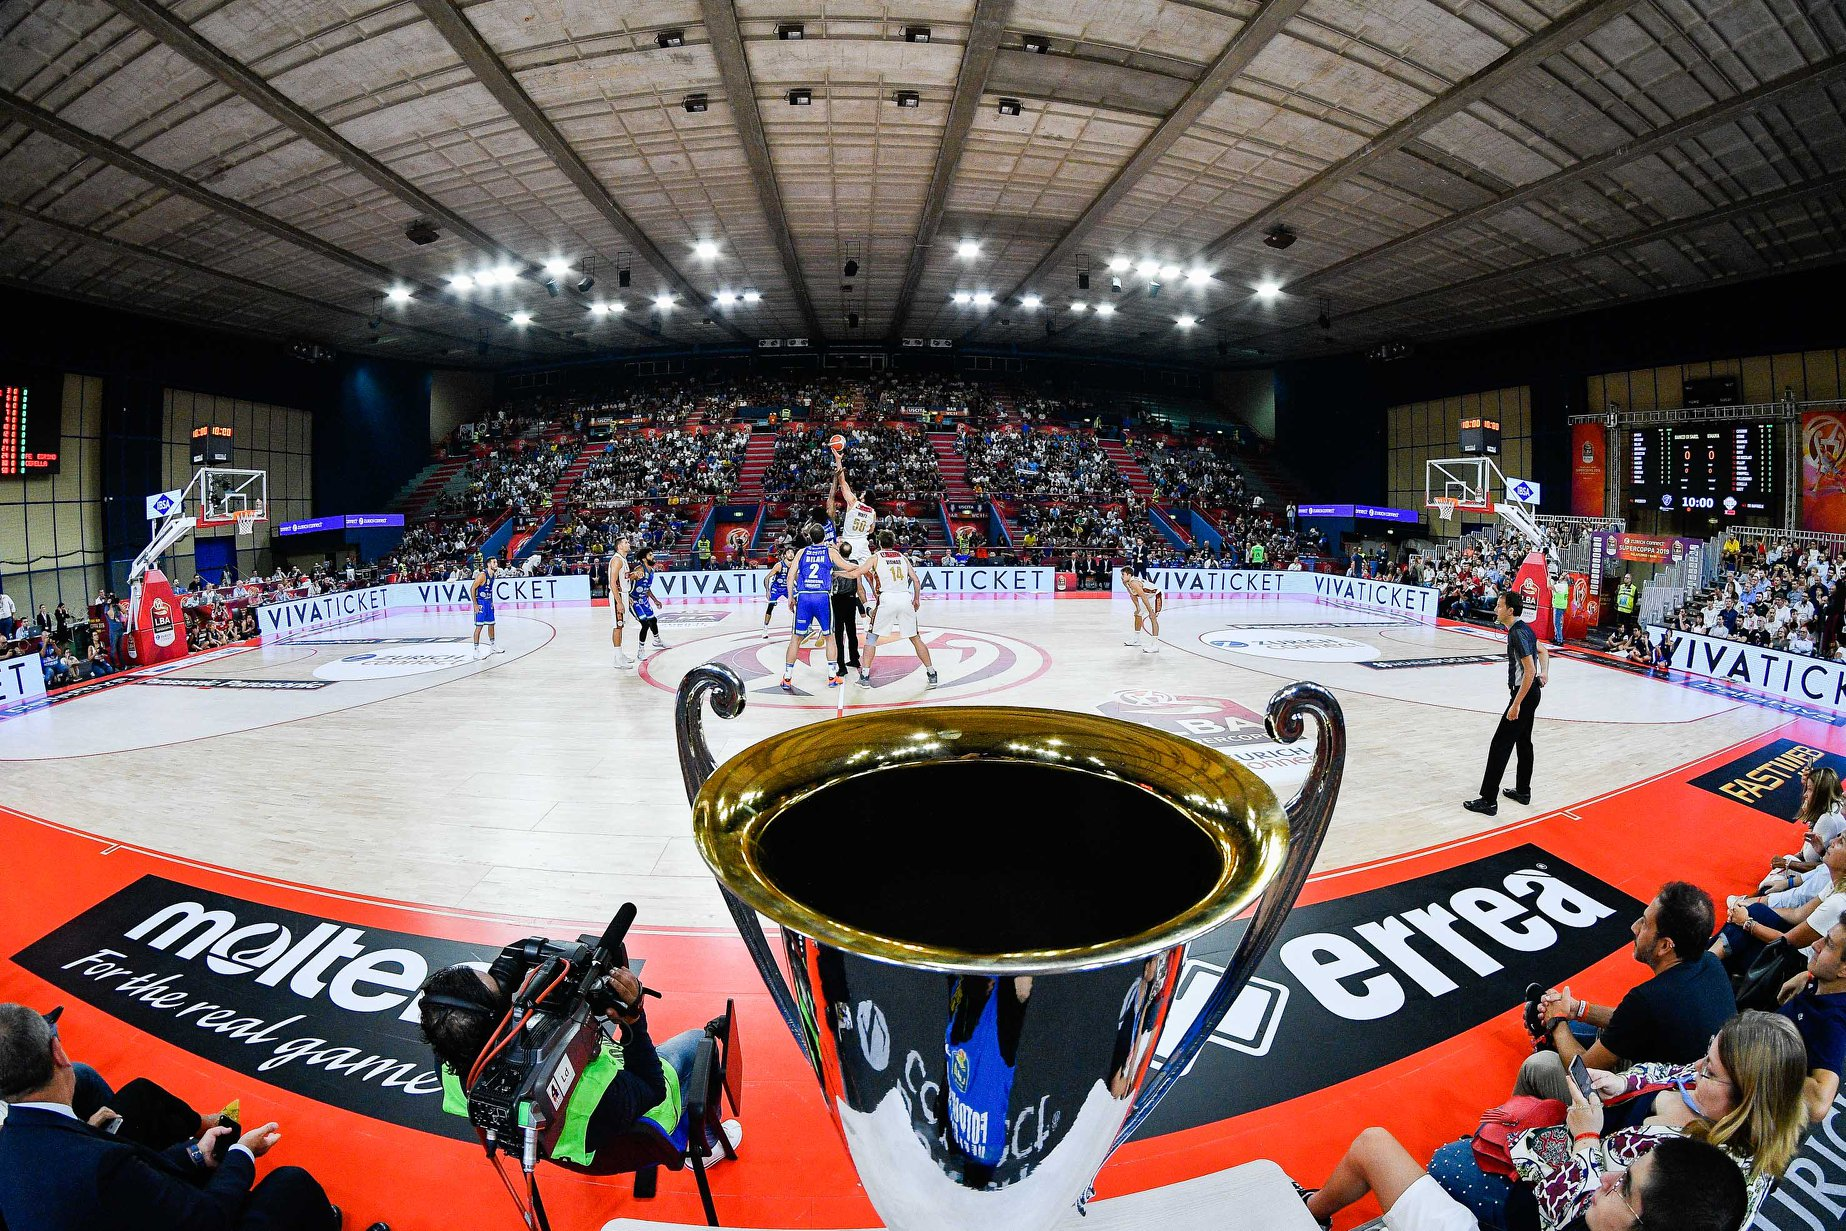 The cup and the beginning of the Final